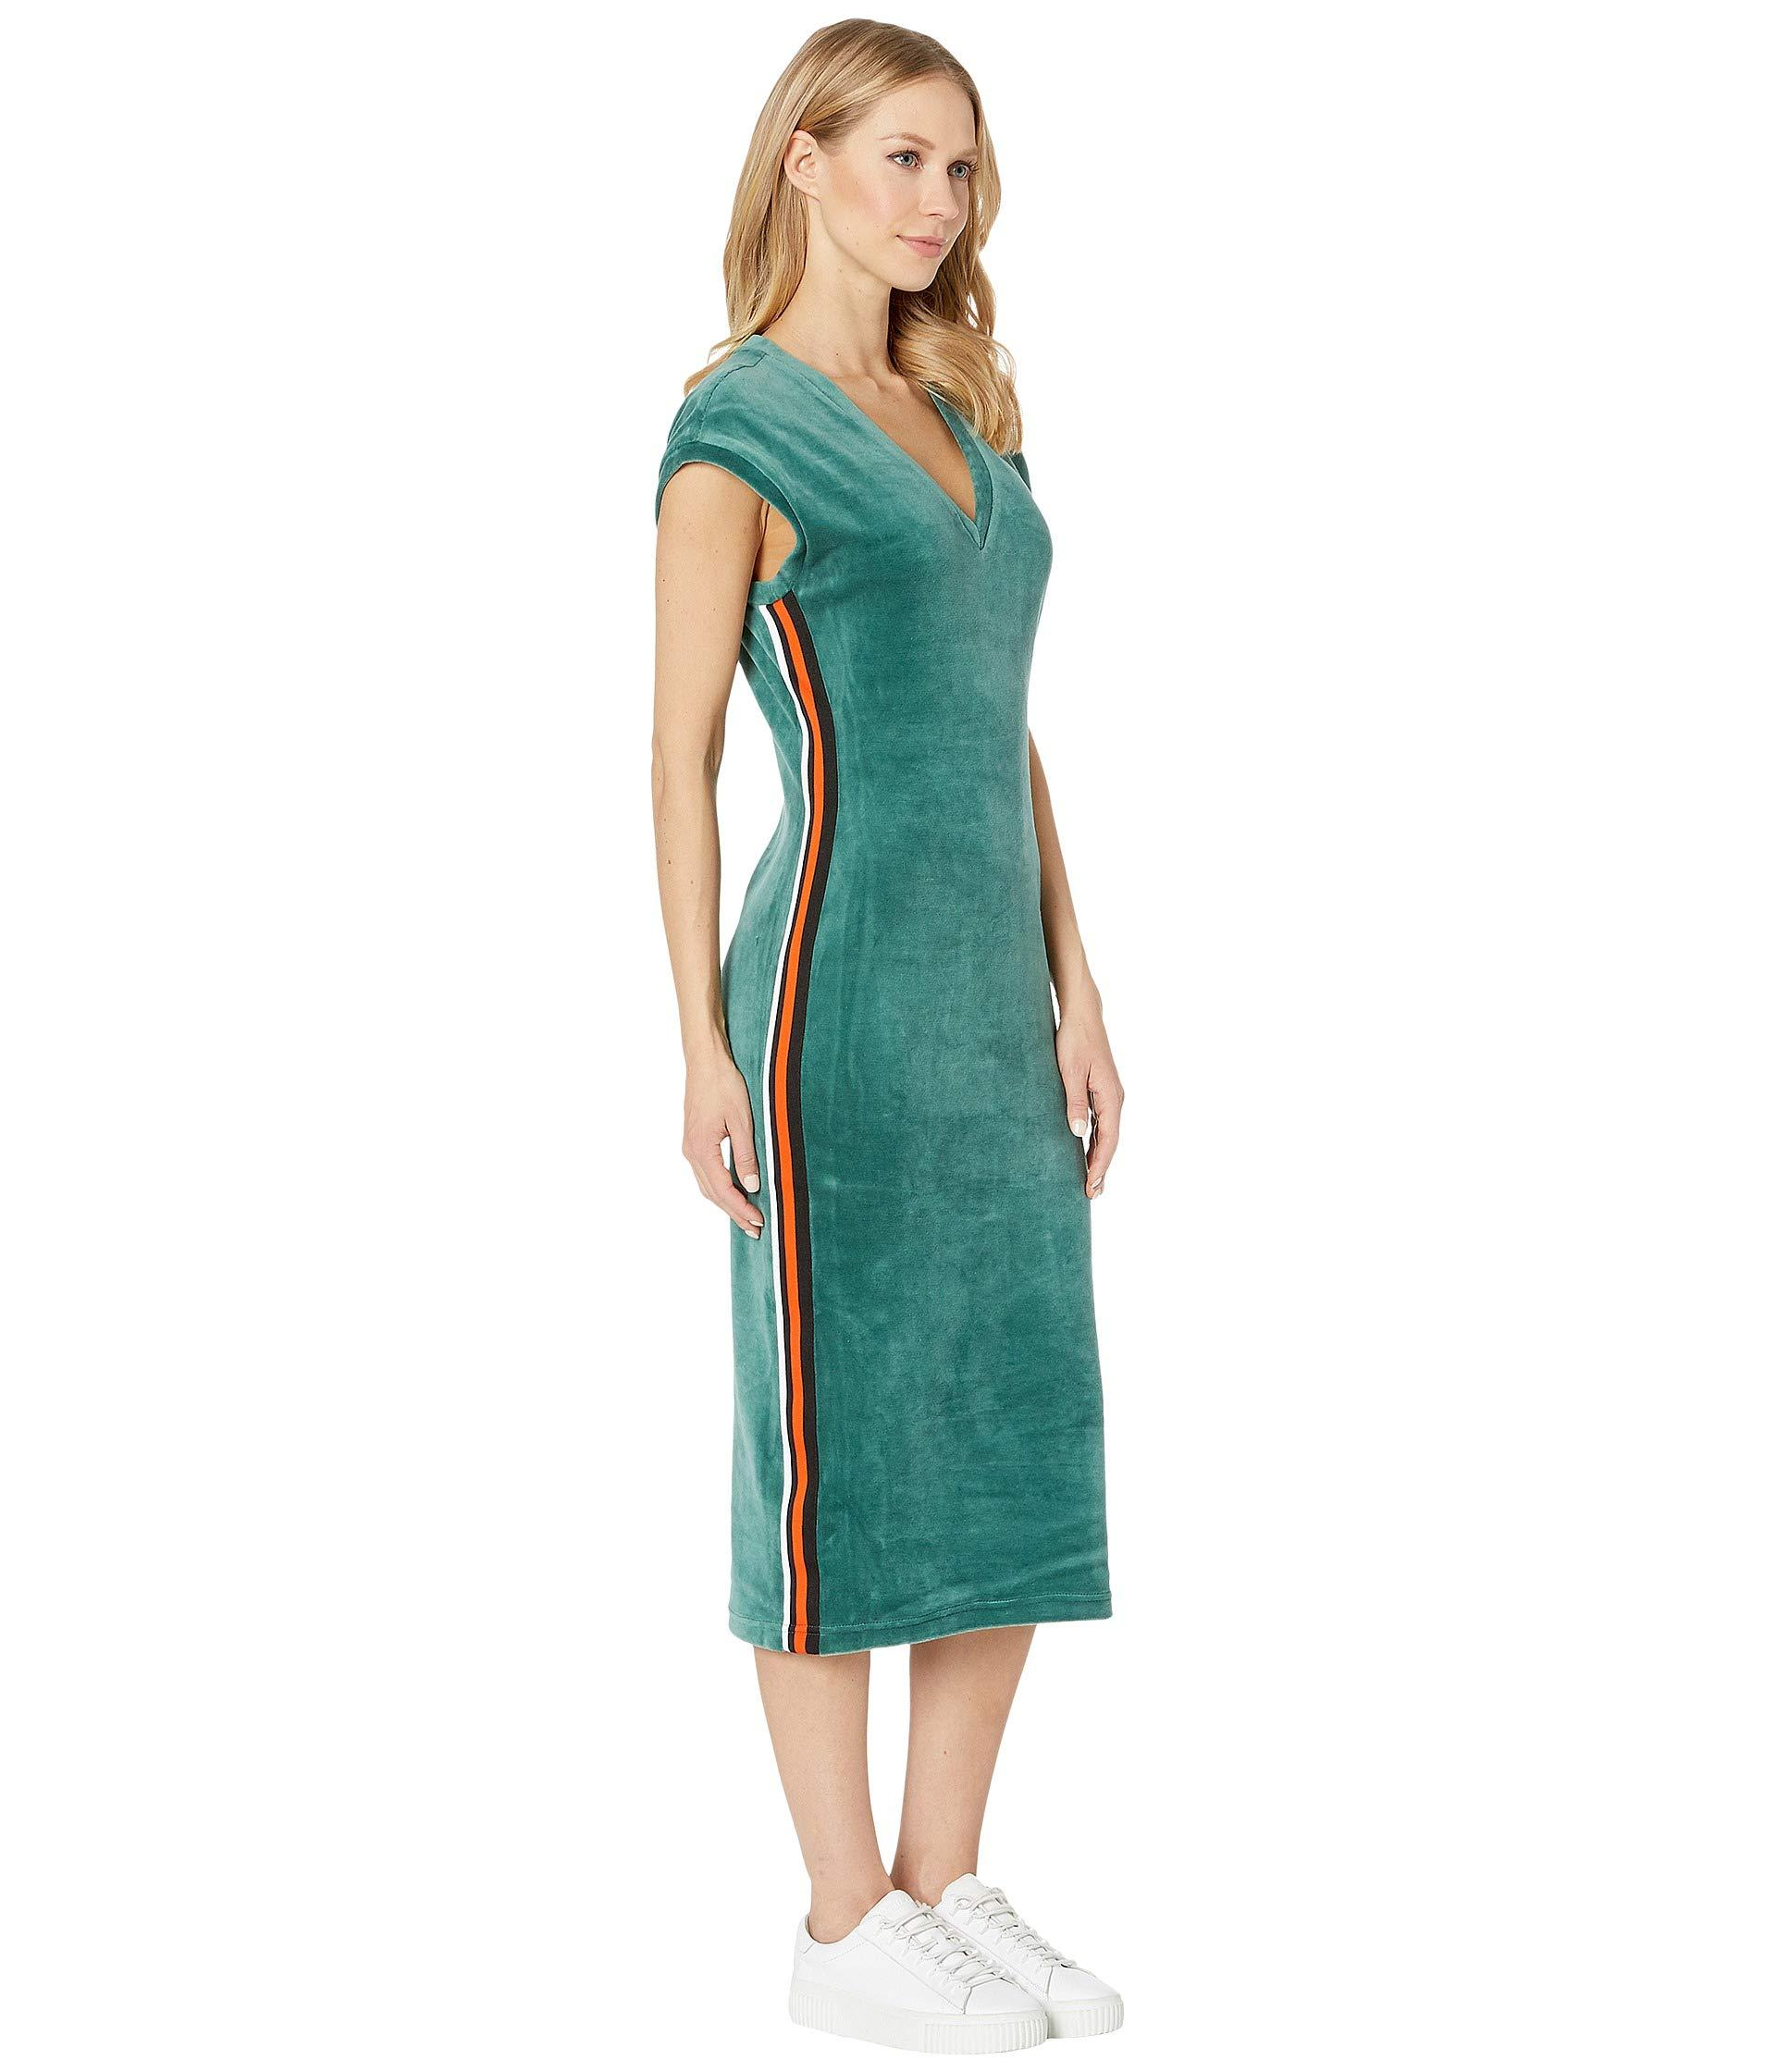 8ab4f278dd40 Juicy Couture - Green Stretch Velour Fitted Midi Dress - Lyst. View  fullscreen